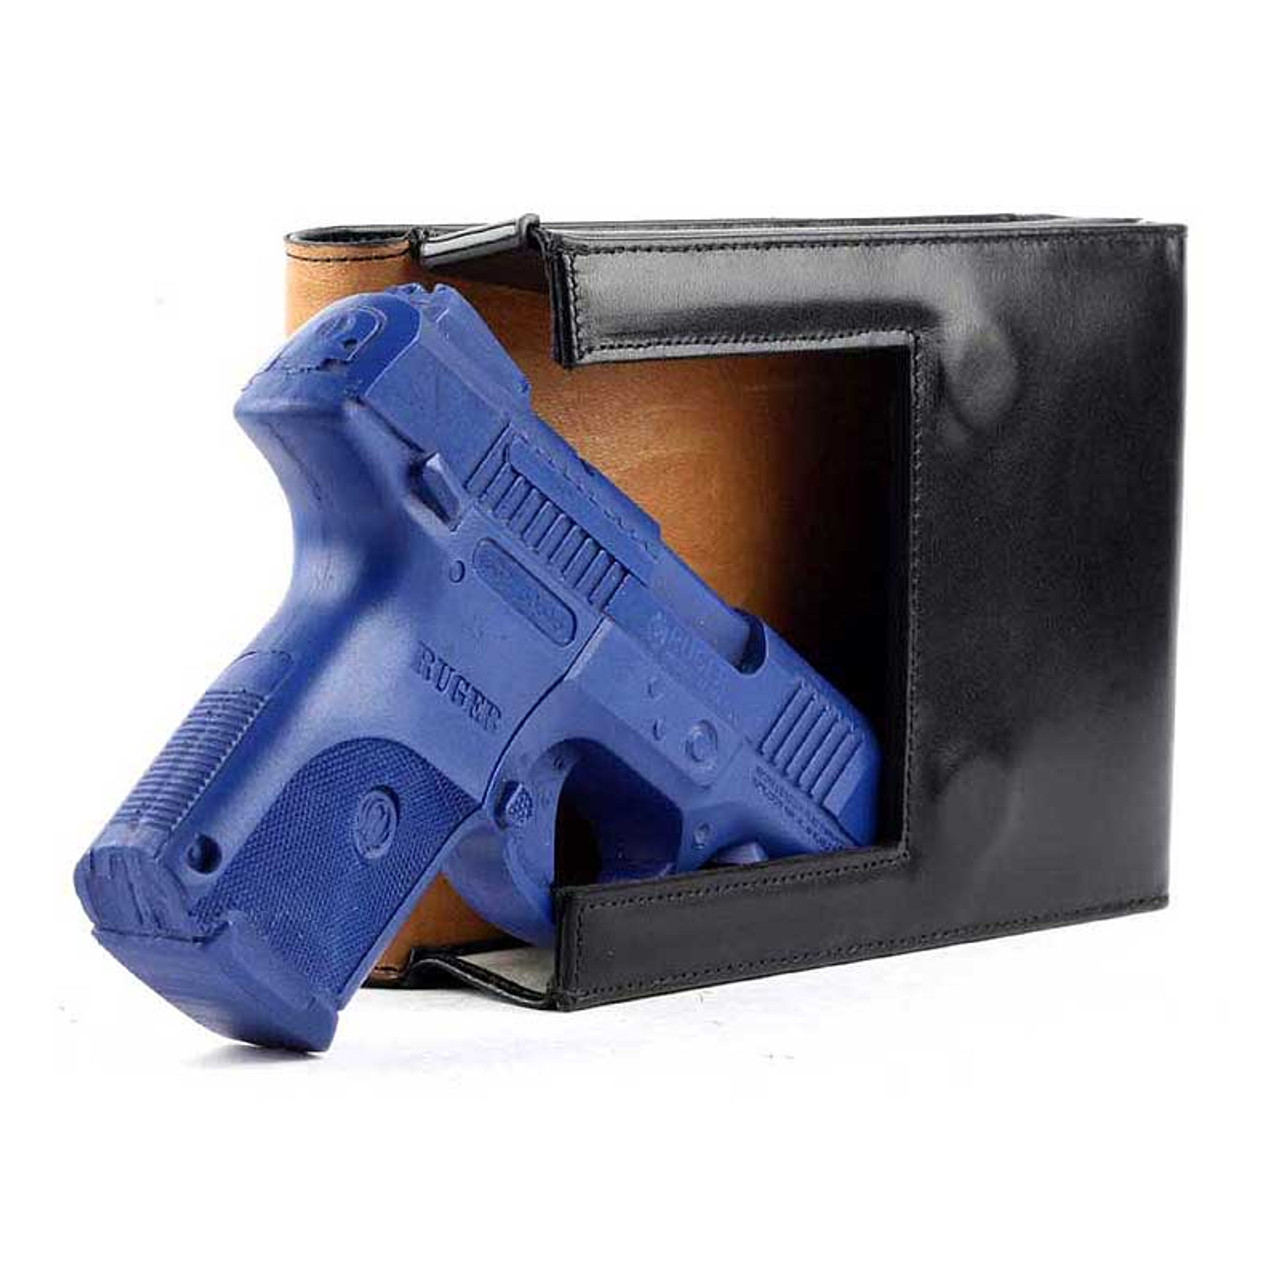 Ruger SR9c Concealed Carry Holster (Belt Loop)